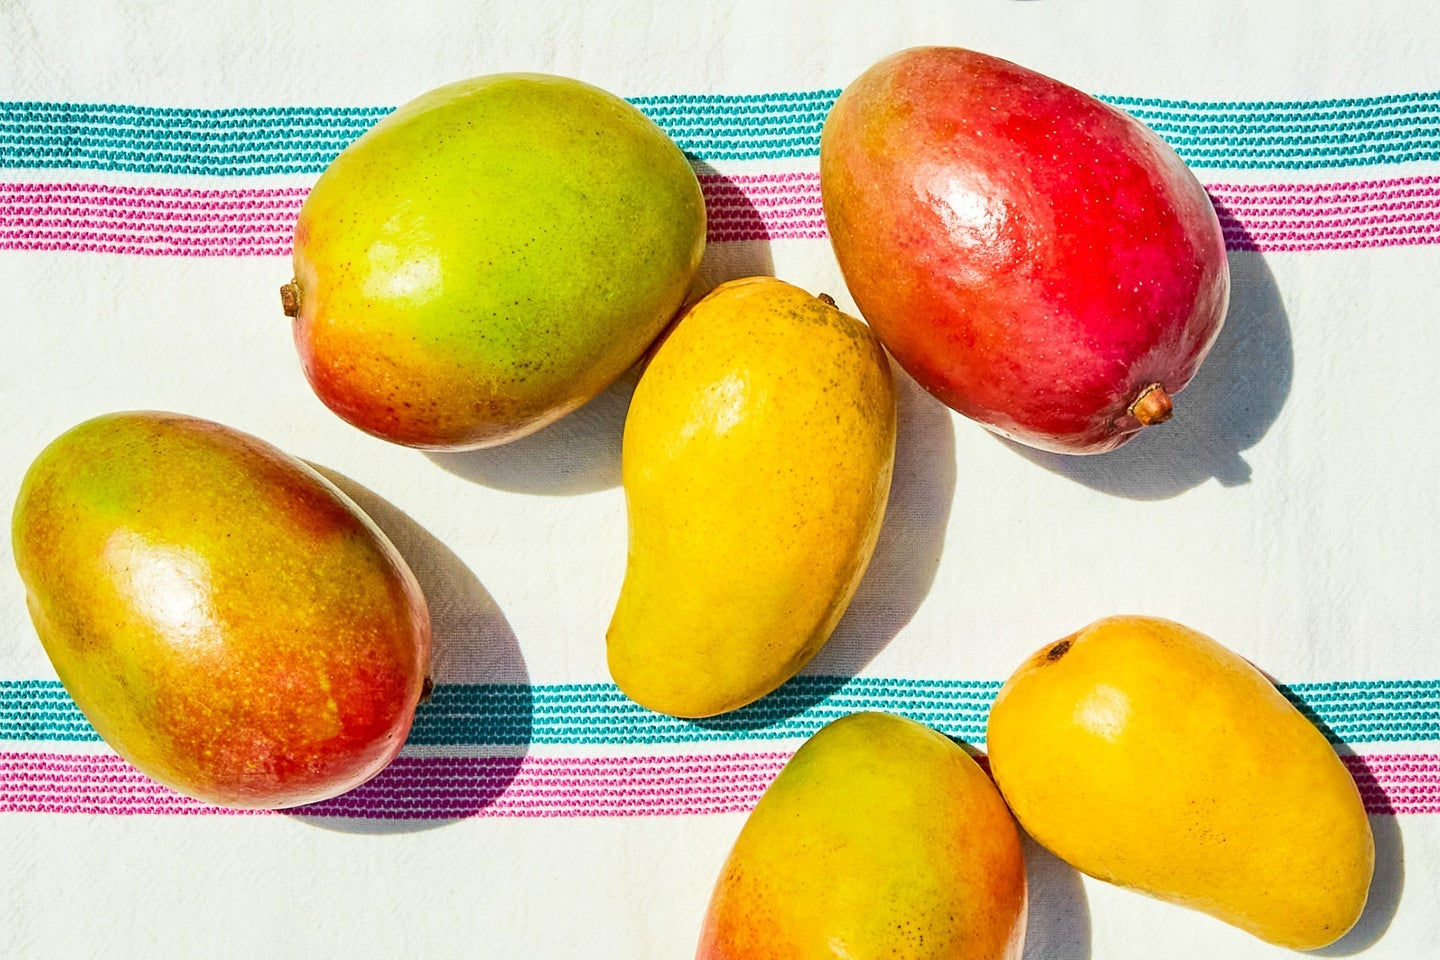 Tommy Atkins and Ataulfo mangoes on a white, blue, and pink blanket